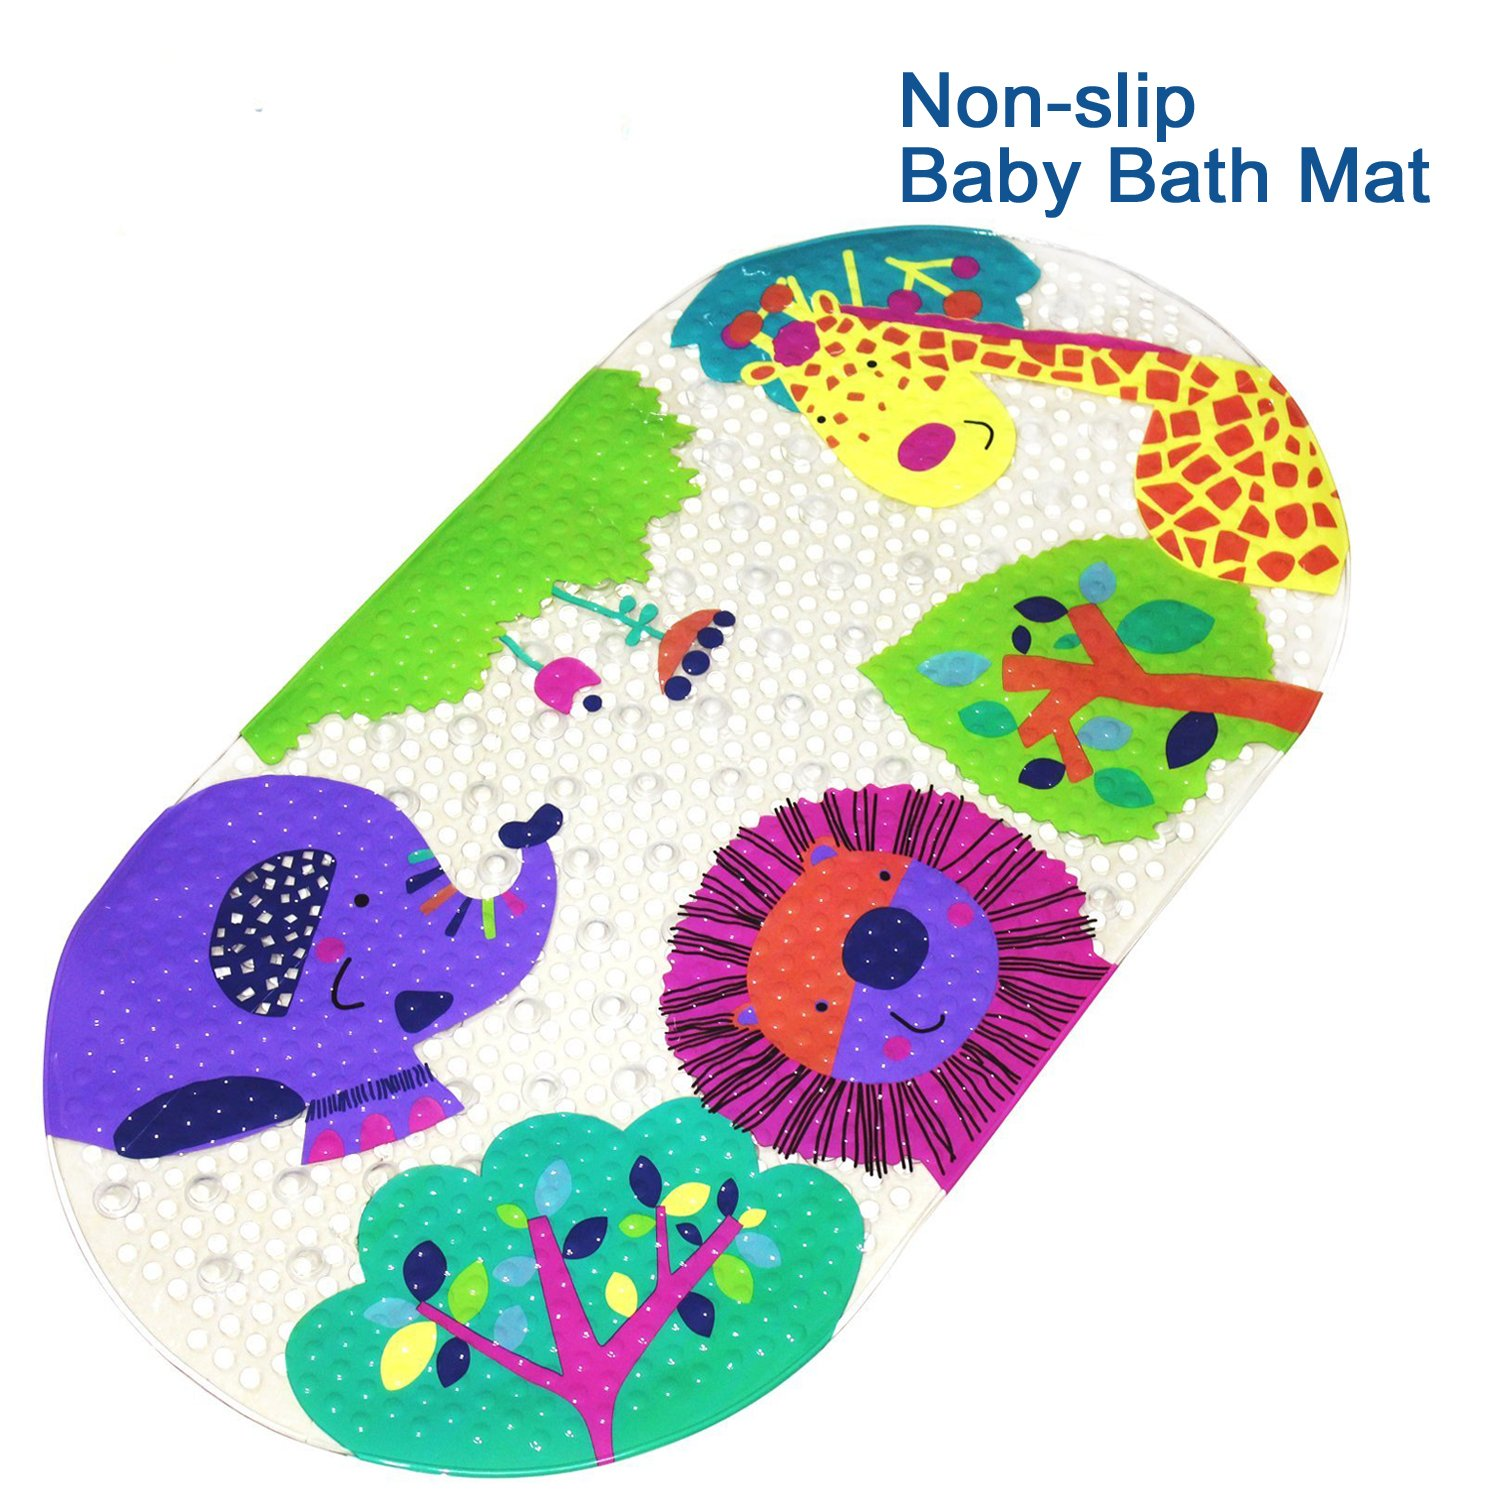 Alledomain Non-slip Baby Bath Mat for Toddler/Kids Anti-Bacterial Bathtub Mat, Shower Mat 69x38cm (27x15) - Durable Suction Cup Design Slip Resistant Bathroom Floor Mats - Phatalates & Lead FREE